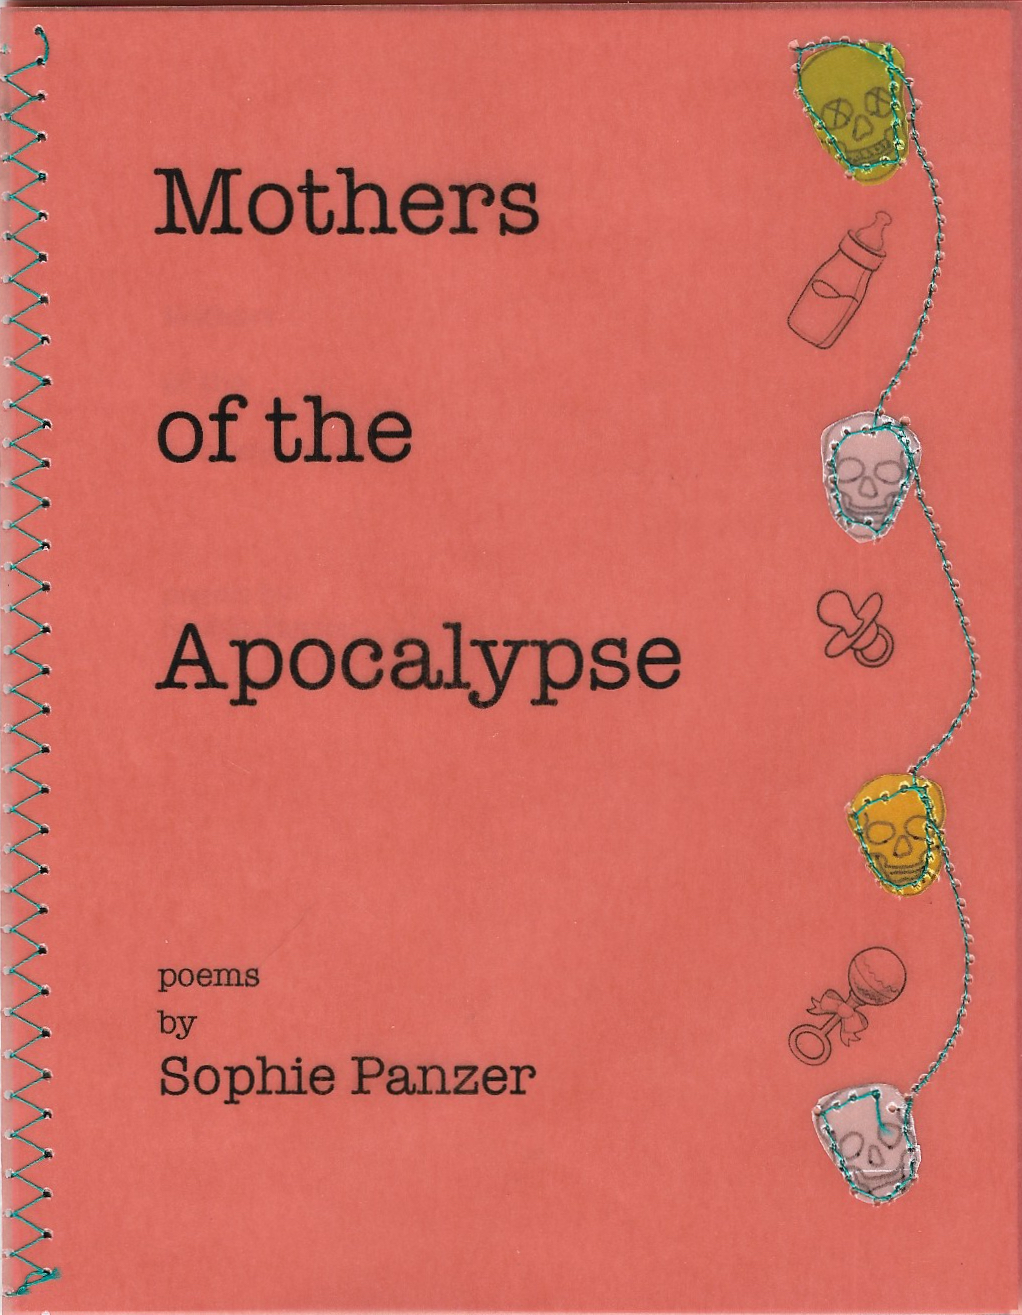 Mothers of the Apocalypse - bySophie PanzerSophie Panzer grew up in New Jersey, completed her BA at McGill University, and currently teaches English in Prague, Czech Republic. She is a prose editor at Inklette and previously edited fiction for Scrivener Creative Review. She was a finalist for the 2017 Quebec Writers Federation Literary Prize for Young Writers and a 2016 Pushcart Prize nominee. She is the author of the forthcoming prose chapbook Survive July (Red Bird Chapbooks 2019) and her work has appeared or is forthcoming in Anti-Heroin Chic, Josephine Quarterly, Lavender Review, Gingerbread House, Pulp Literature, the Claremont Review, carte blanche, Soliloquies Anthology, and Young Adult Review Network, among others. She enjoys comedy, NPR, nature, carbohydrates and dogs.